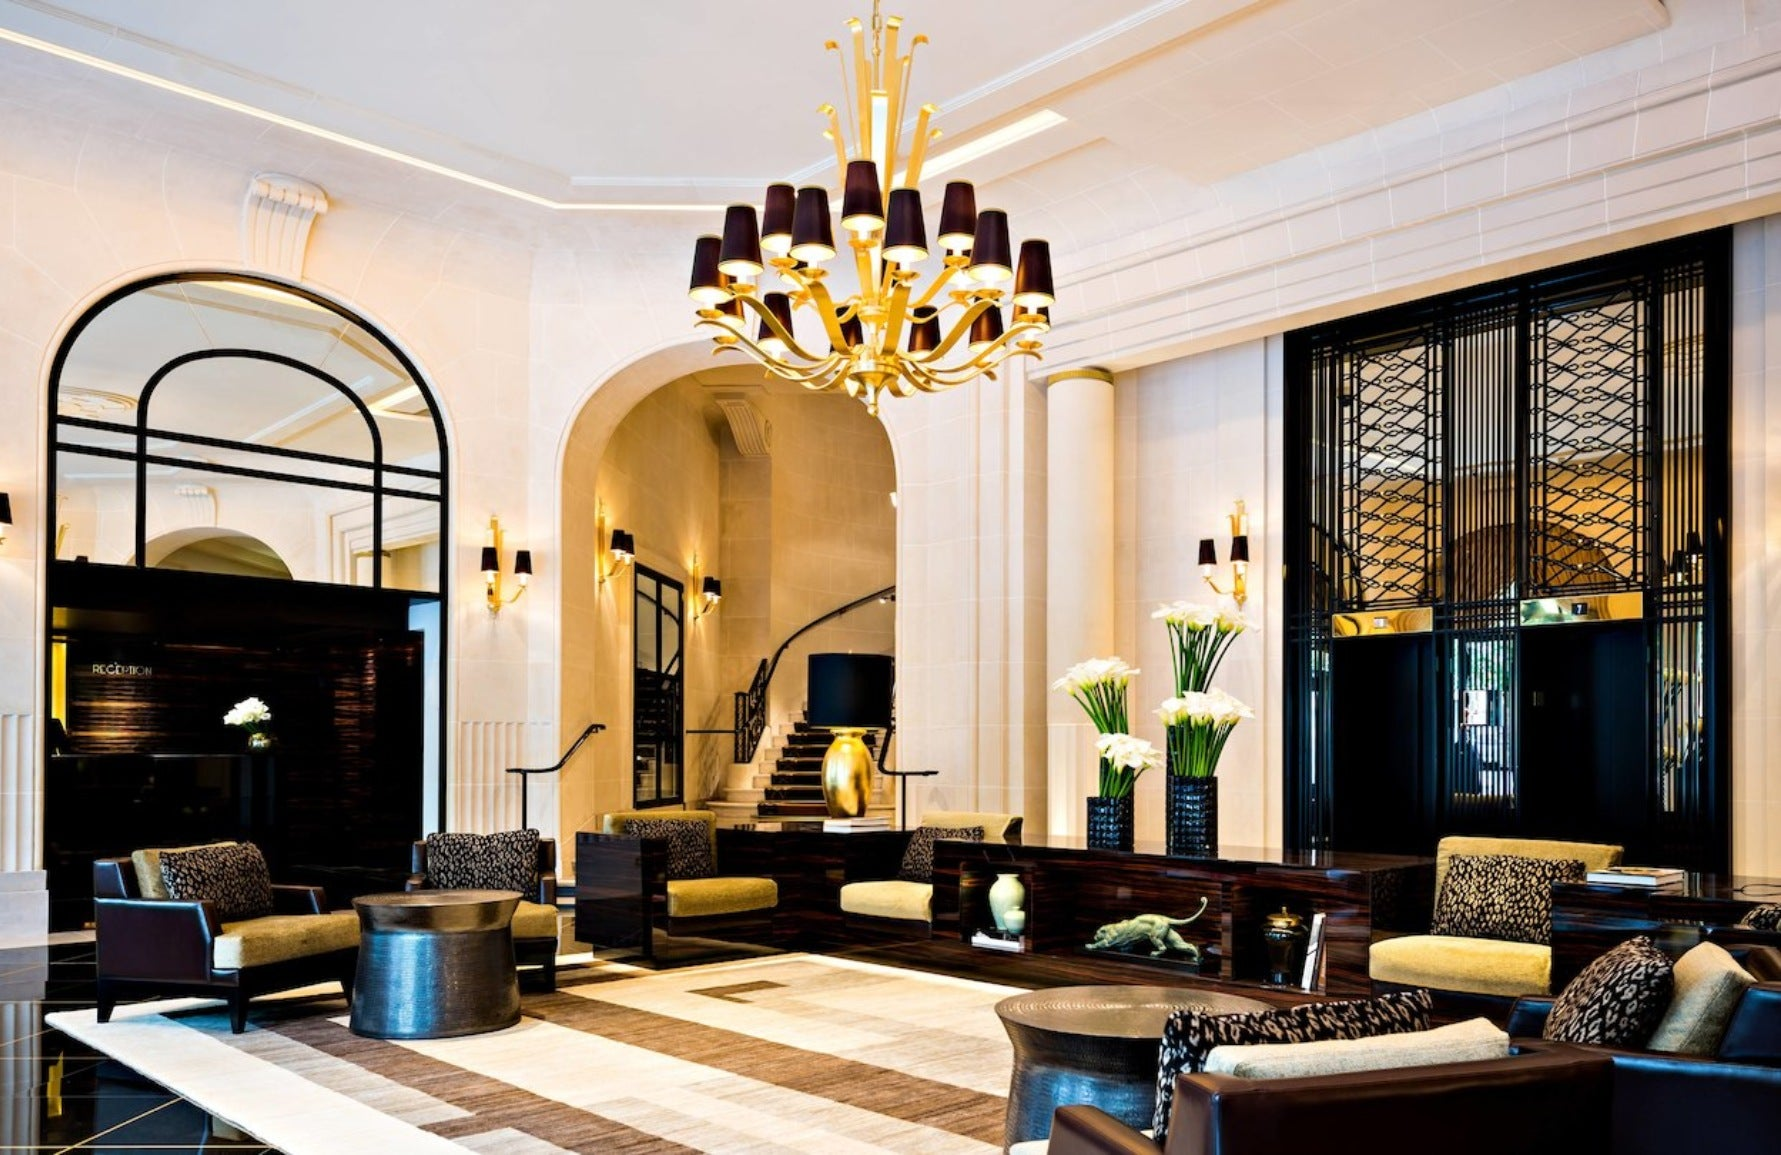 Prince des Galles | Art Deco Hotels | Read more in the LuxDeco.com Style Guide